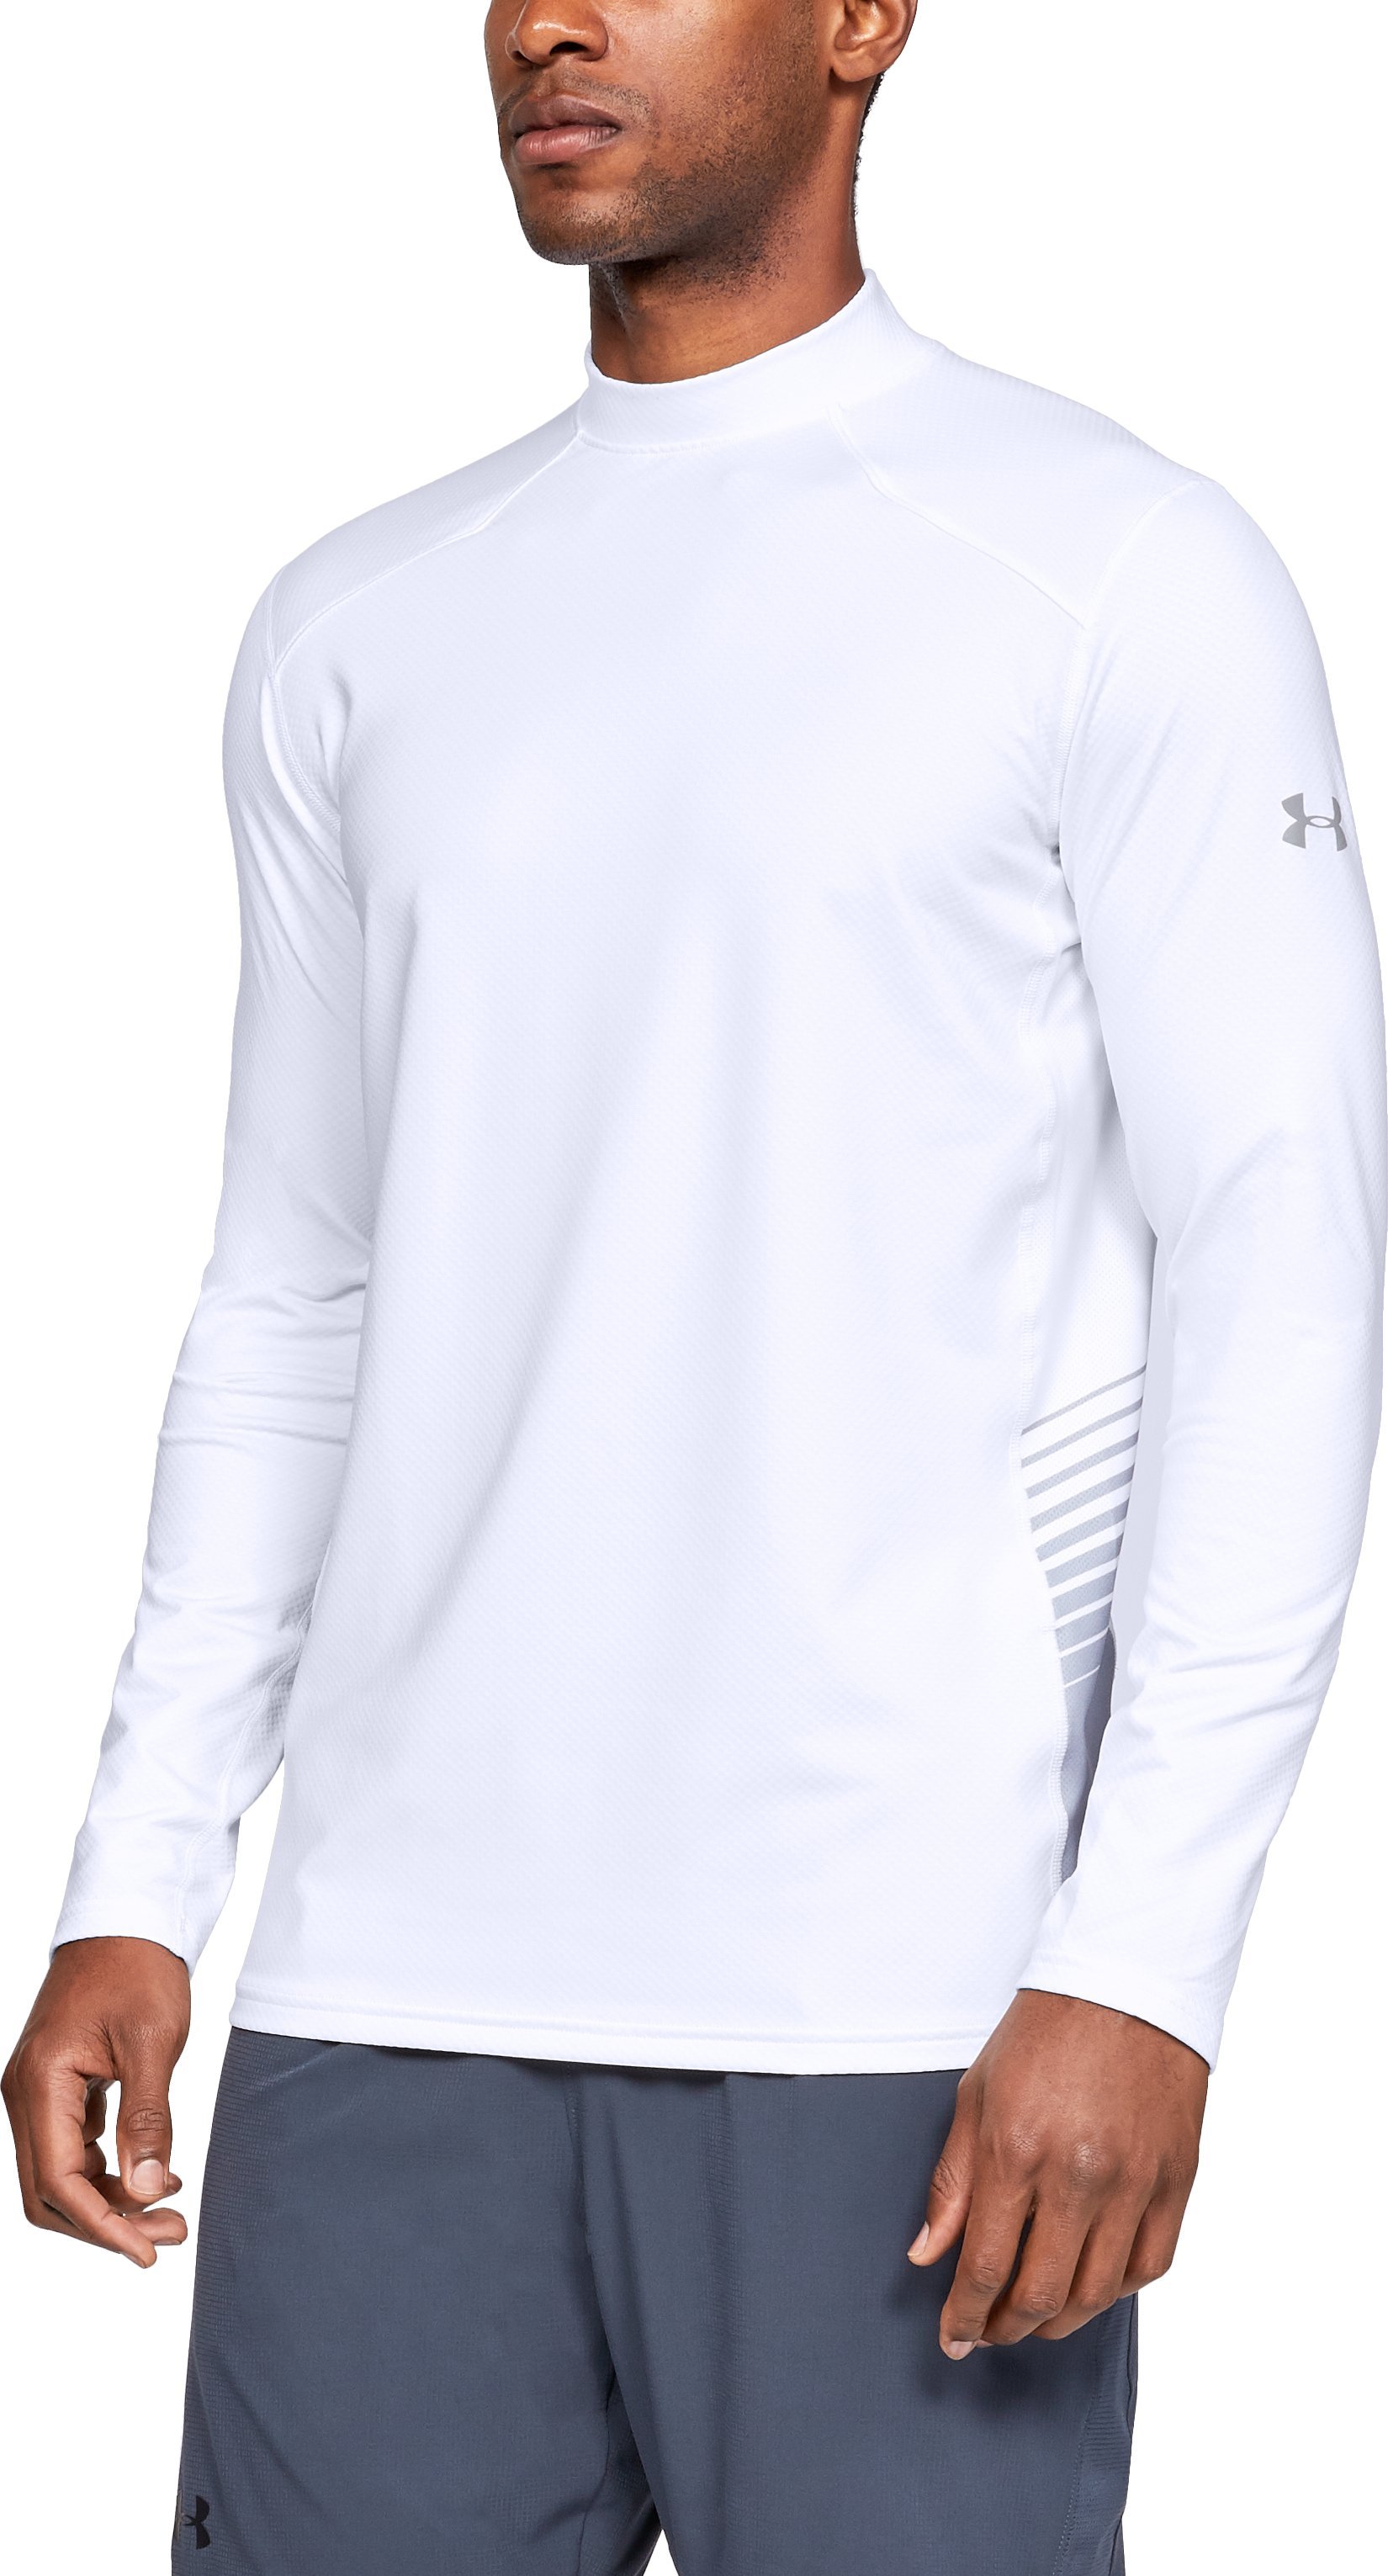 Men's ColdGear® Reactor Long Sleeve Shirt, White